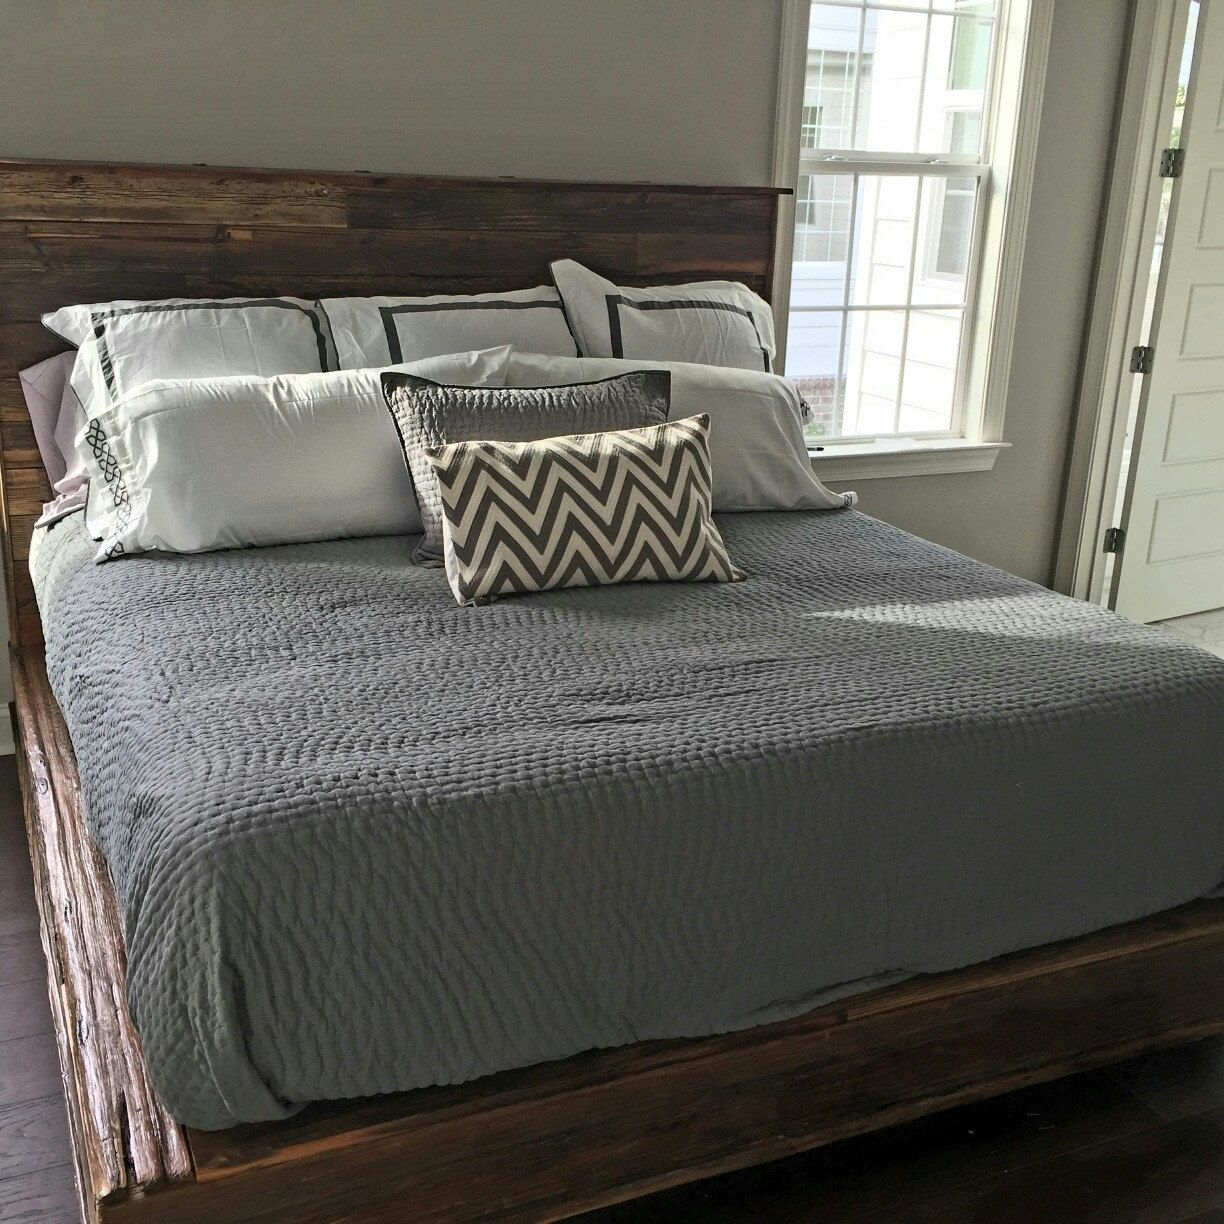 Our bed finally put together at our customer's house Bed